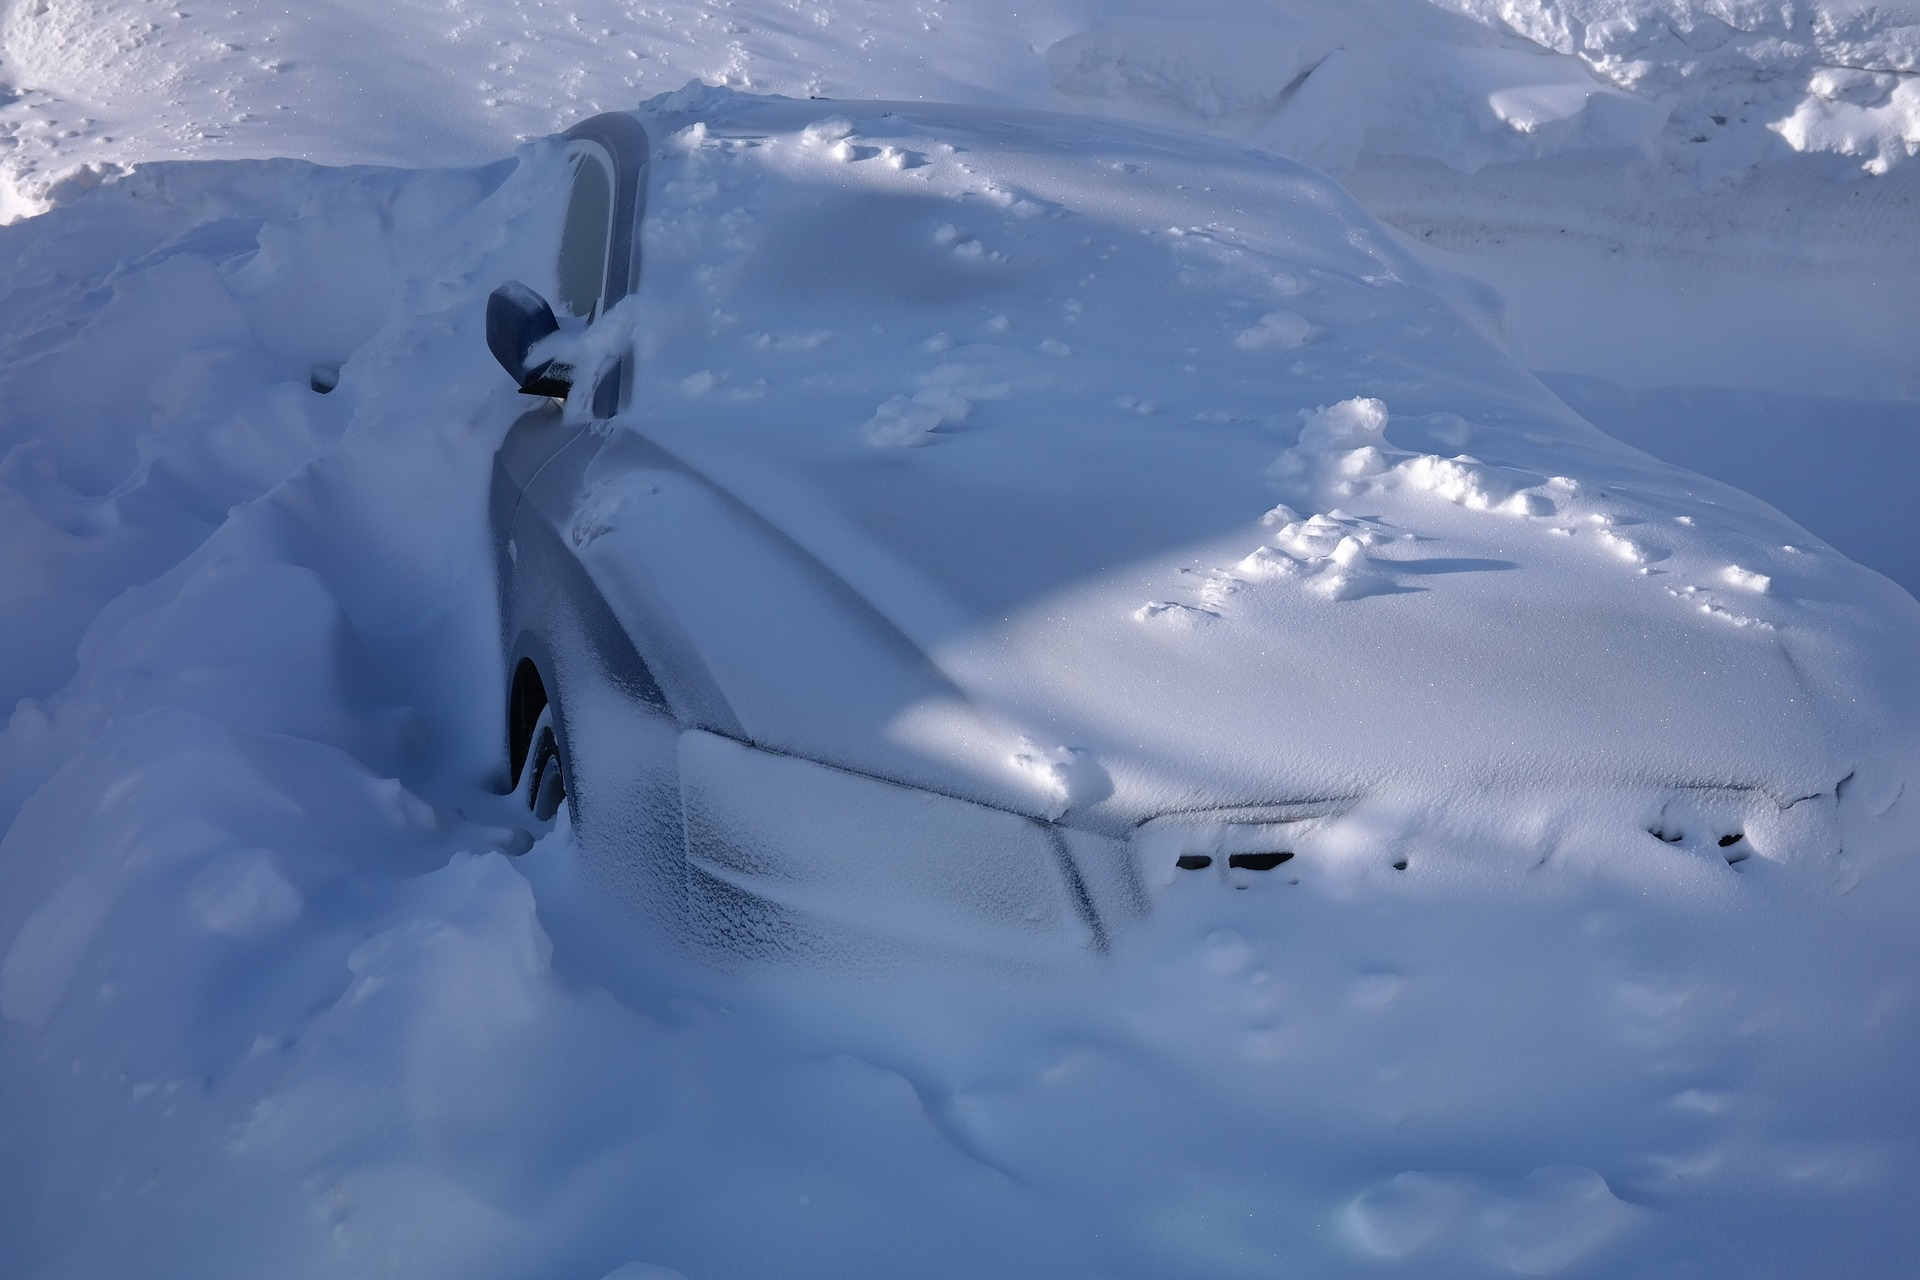 Winterizing Your Car: A Checklist To Get Your Car Winter Ready